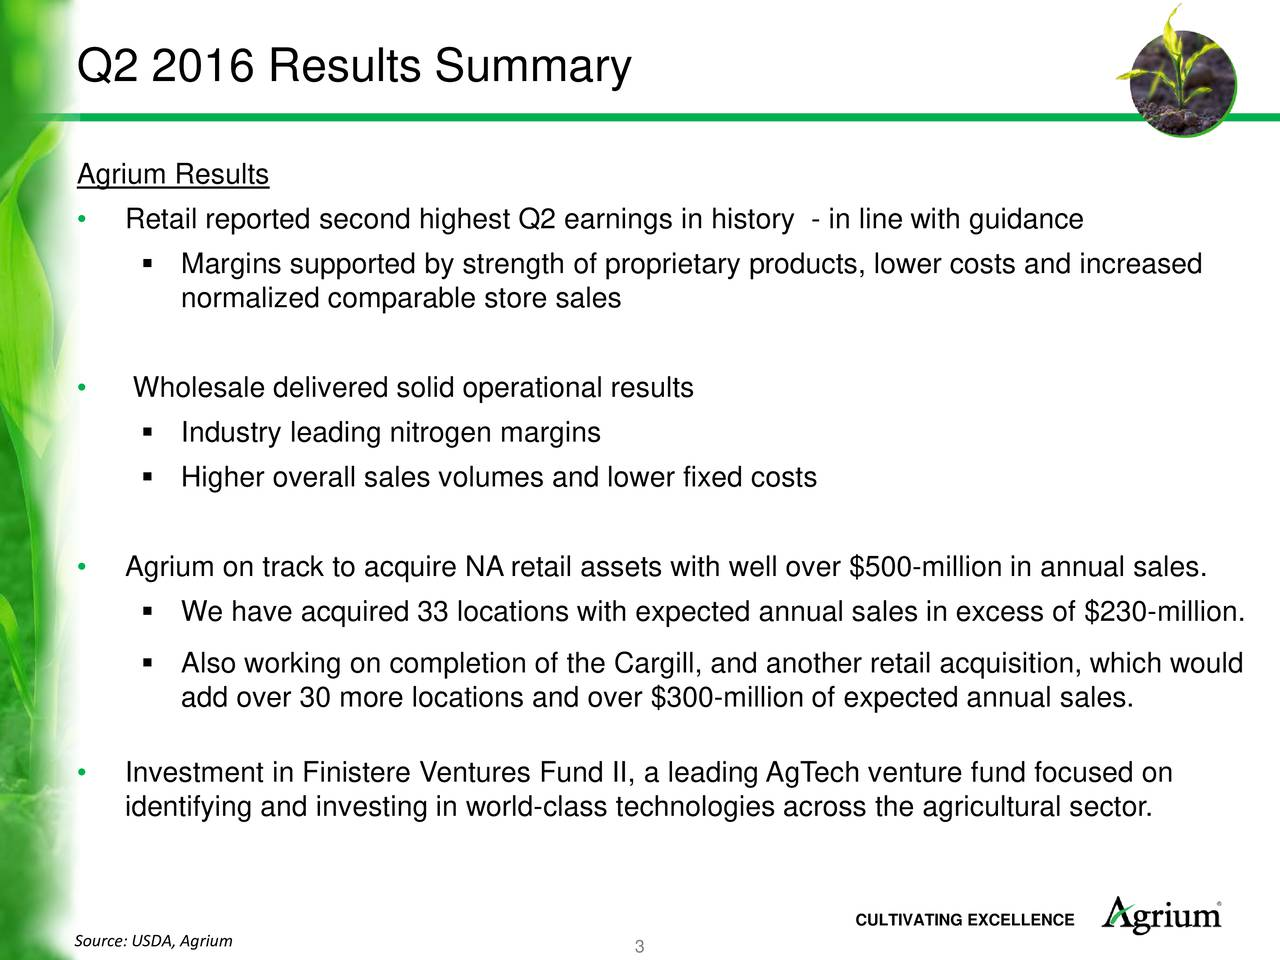 Agrium Results Retail reported second highest Q2 earnings in history - in line with guidance Margins supported by strength of proprietary products, lower costs and increased normalized comparable store sales Wholesale delivered solid operational results Industry leading nitrogen margins Higher overall sales volumes and lower fixed costs Agrium on track to acquire NA retail assets with well over $500-million in annual sales. We have acquired 33 locations with expected annual sales in excess of $230-million. Also working on completion of the Cargill, and another retail acquisition, which would add over 30 more locations and over $300-million of expected annual sales. Investment in Finistere Ventures Fund II, a leading AgTech venture fund focused on identifying and investing in world-class technologies across the agricultural sector. Source: USDA, Agrium CULTIVATING EXCELLENCE